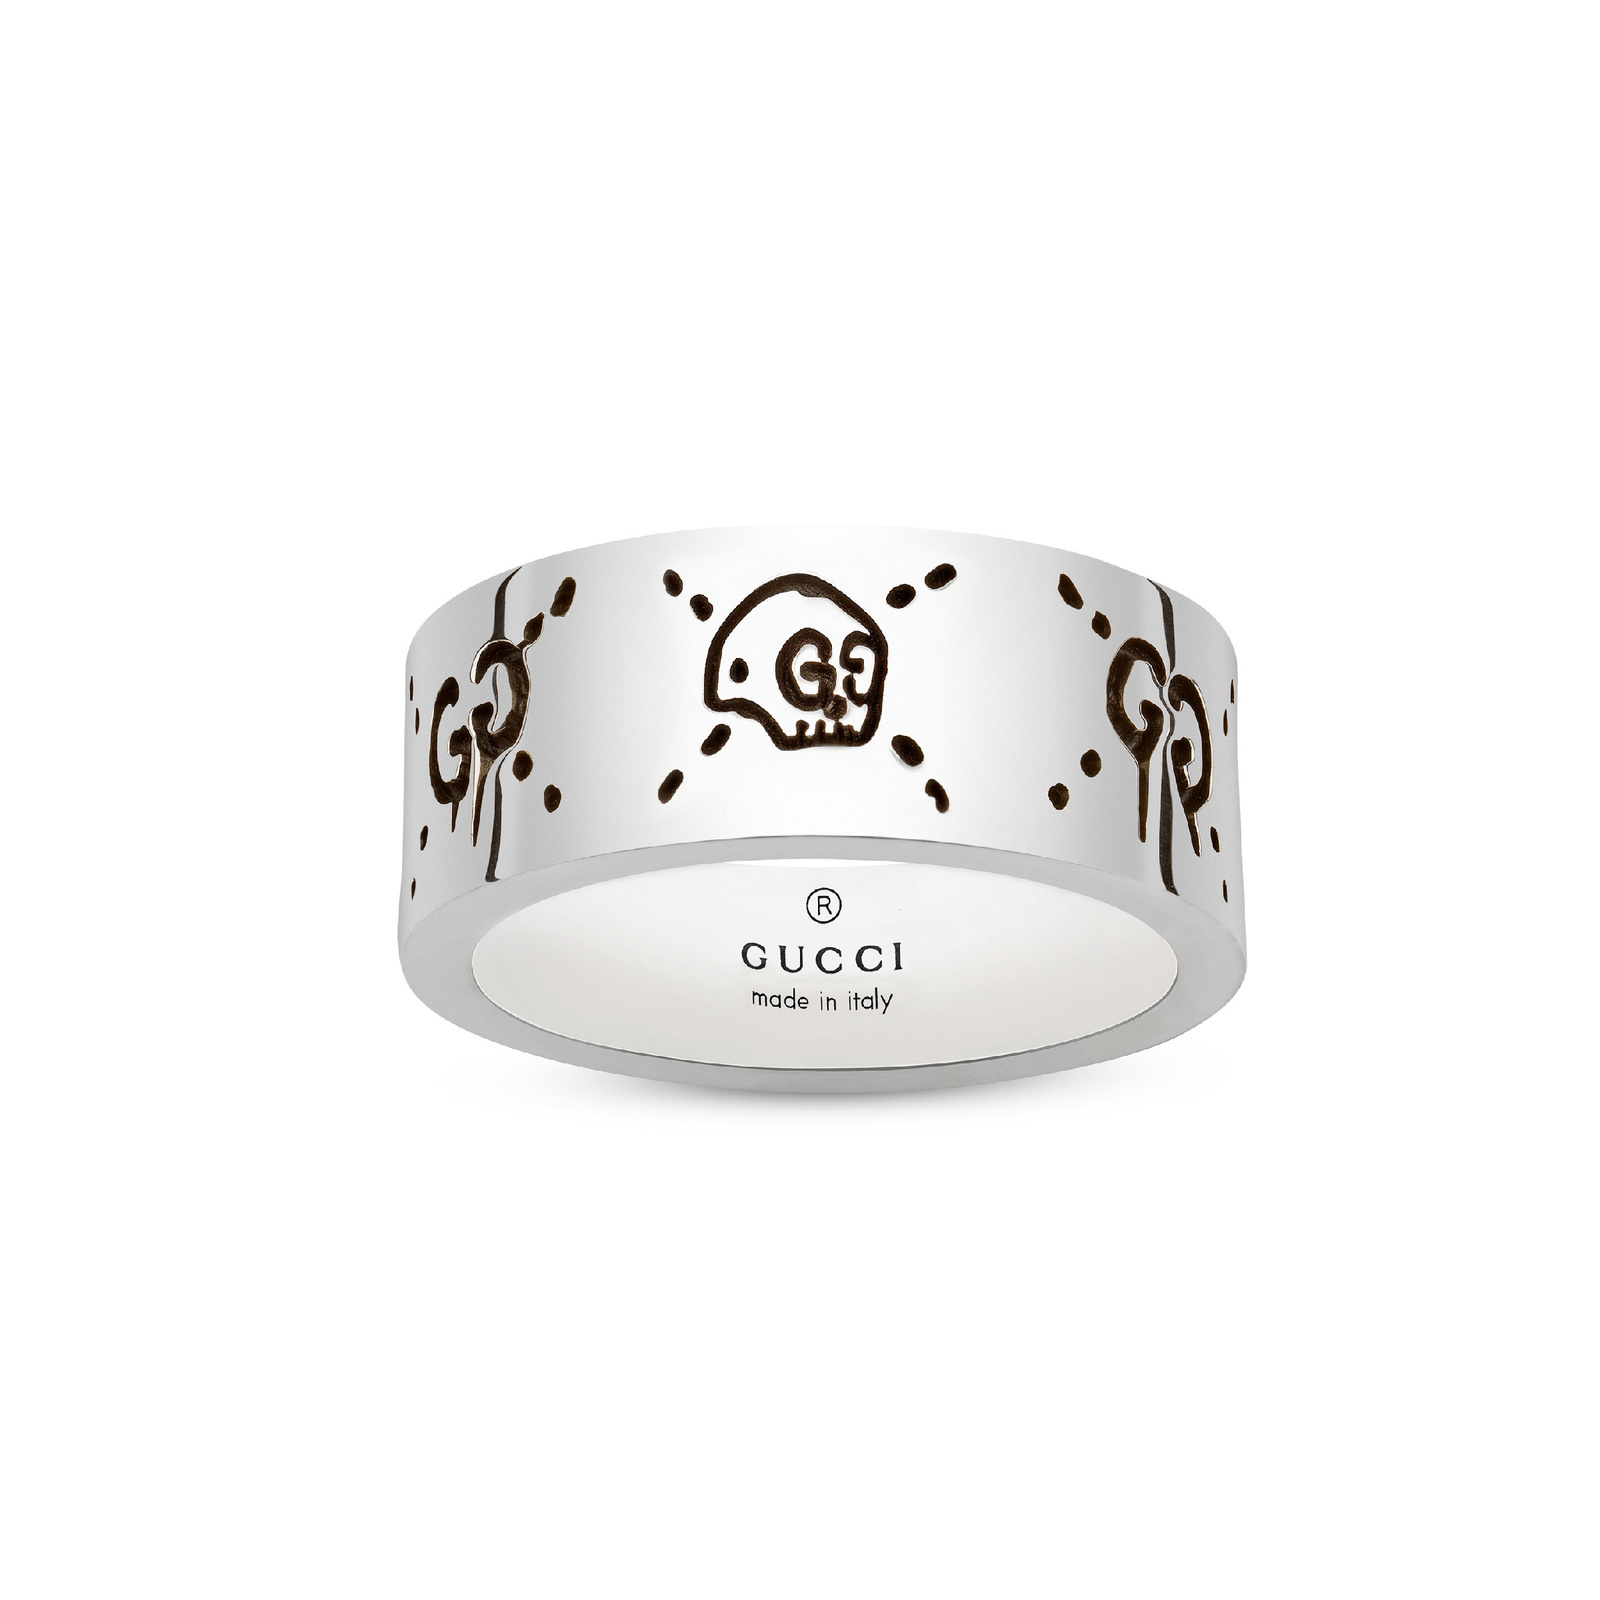 Gucci Ghost 9mm Ring in Silver - Ring Size K.5